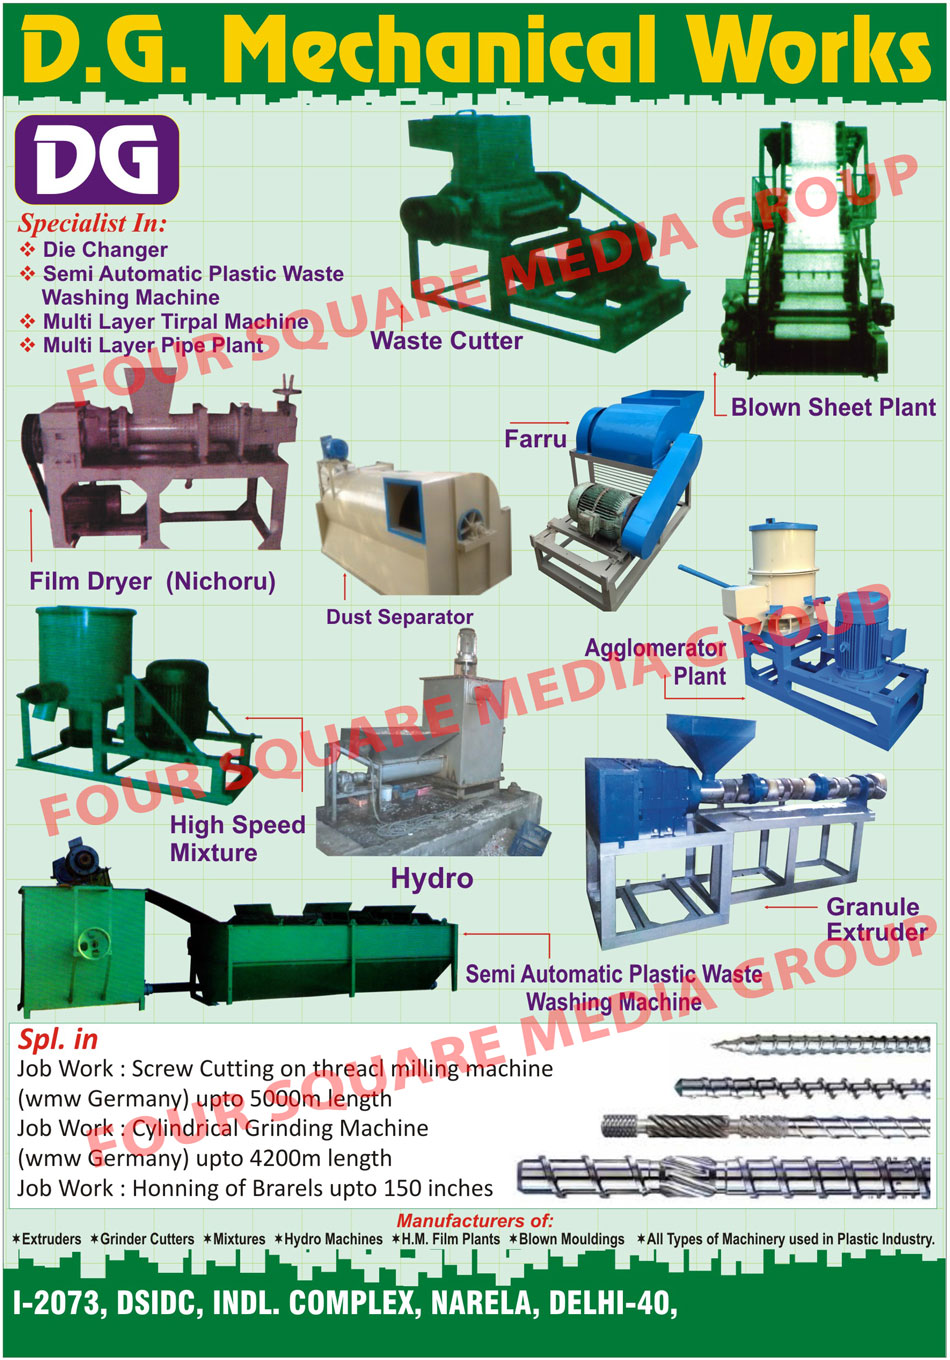 Film Dryers, Waste Cutters, Blown Sheet Plants, Agglomerator Plants, High Speed Mixture, Granule Extruders, Semi Automatic Plastic Waste Washing Machines, Hydro Machines, Extruders, Grinder Cutters, HM Film Plants, Blown Moulding, Plastic Industry Machinery, Scrap Cutters, Semi Automatic Plastic Scrap Washing Machines, Die Changer, Mixtures, Film Plants, Blown Mouldings, Multi Layer Tripal Machines, Dust Separators